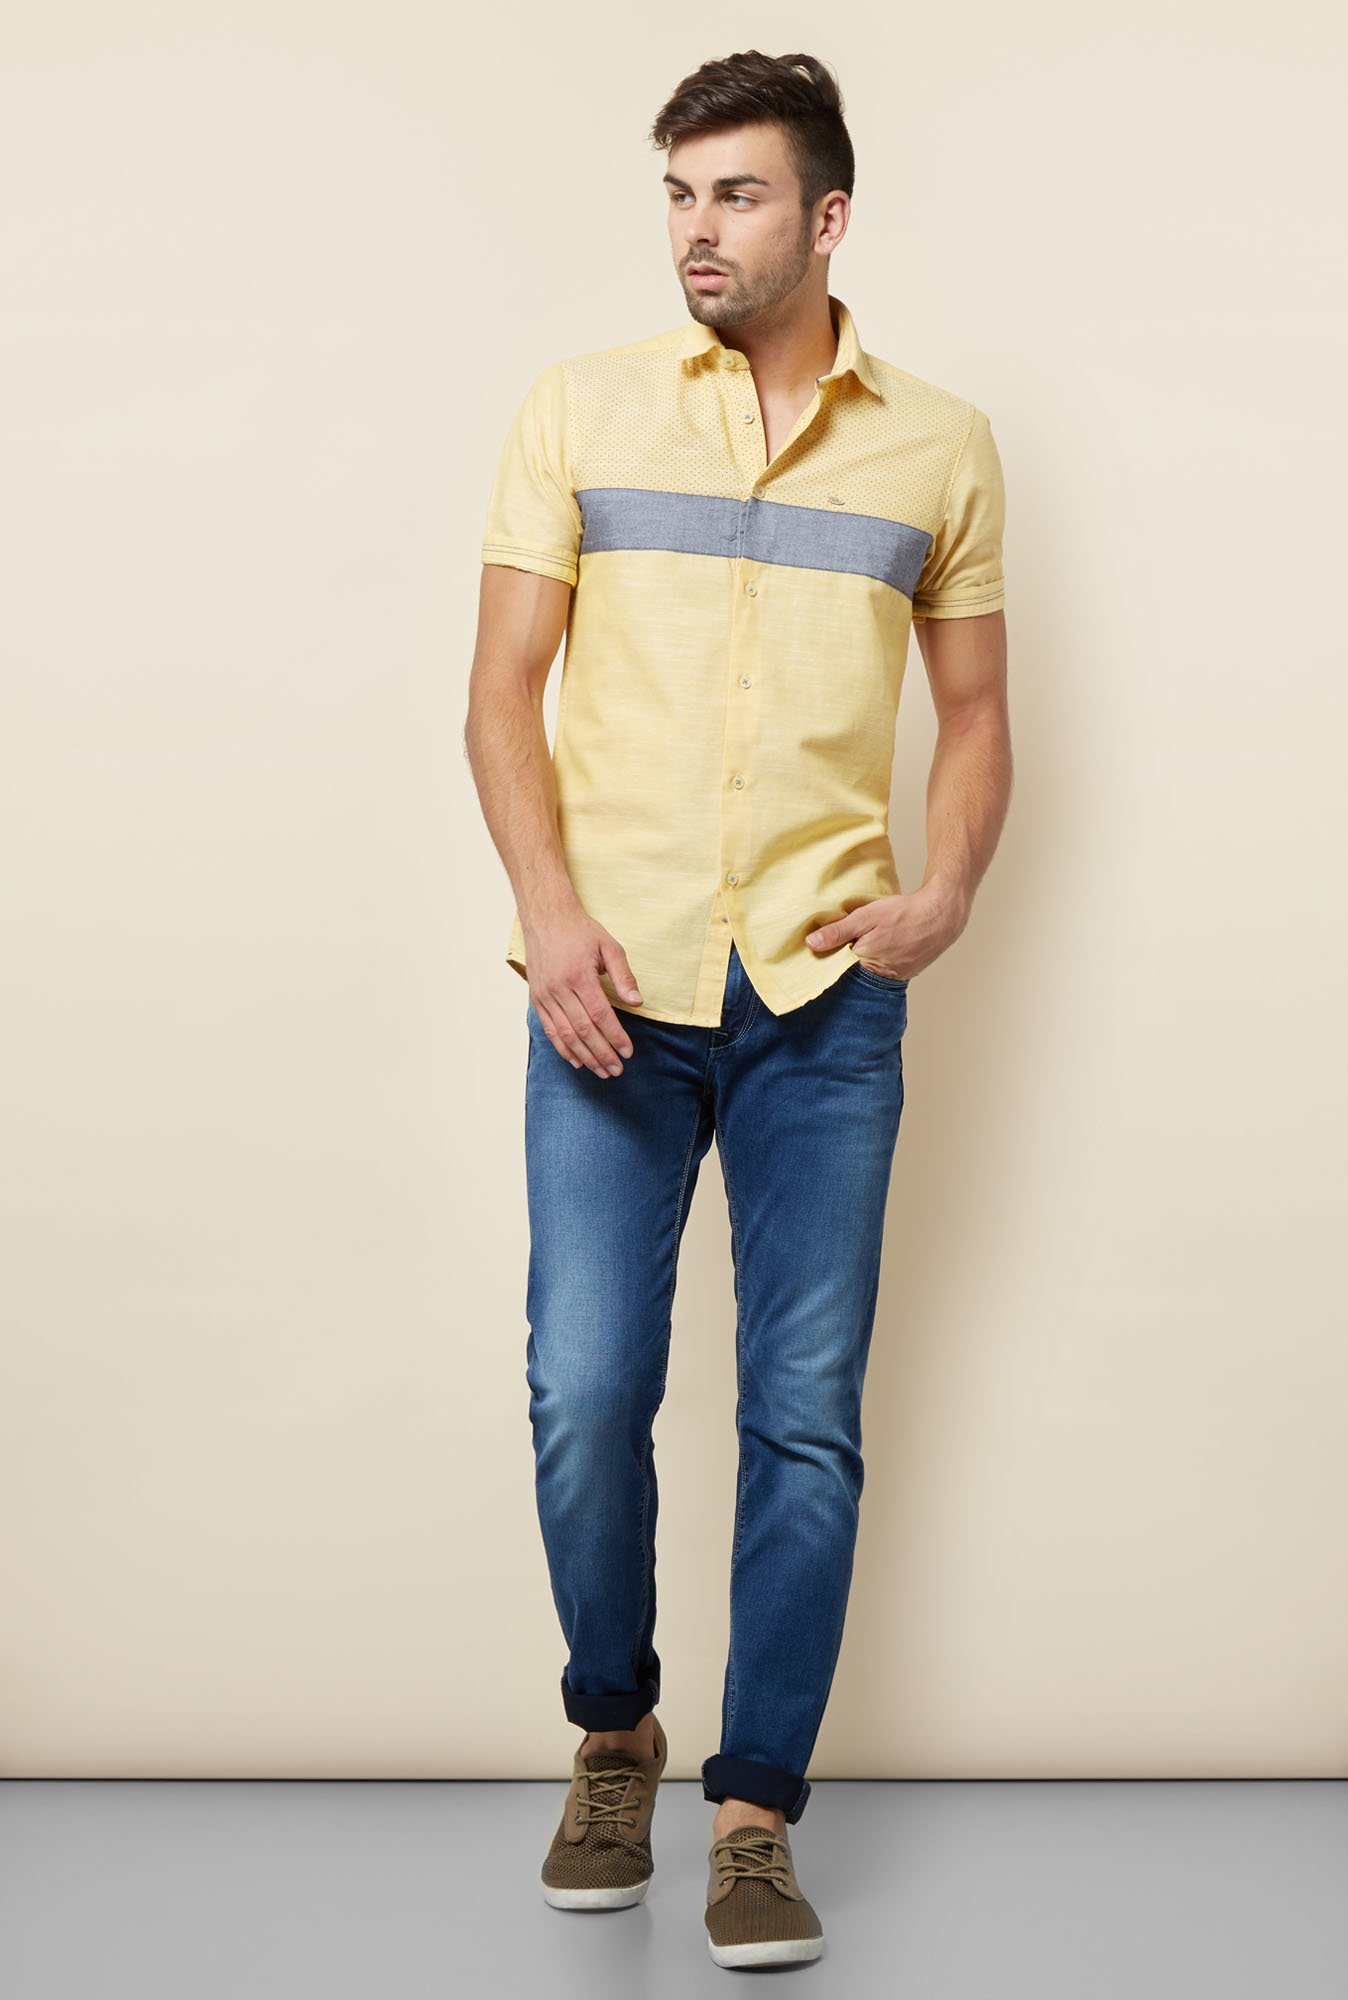 Lawman Lemon Printed Casual Shirt